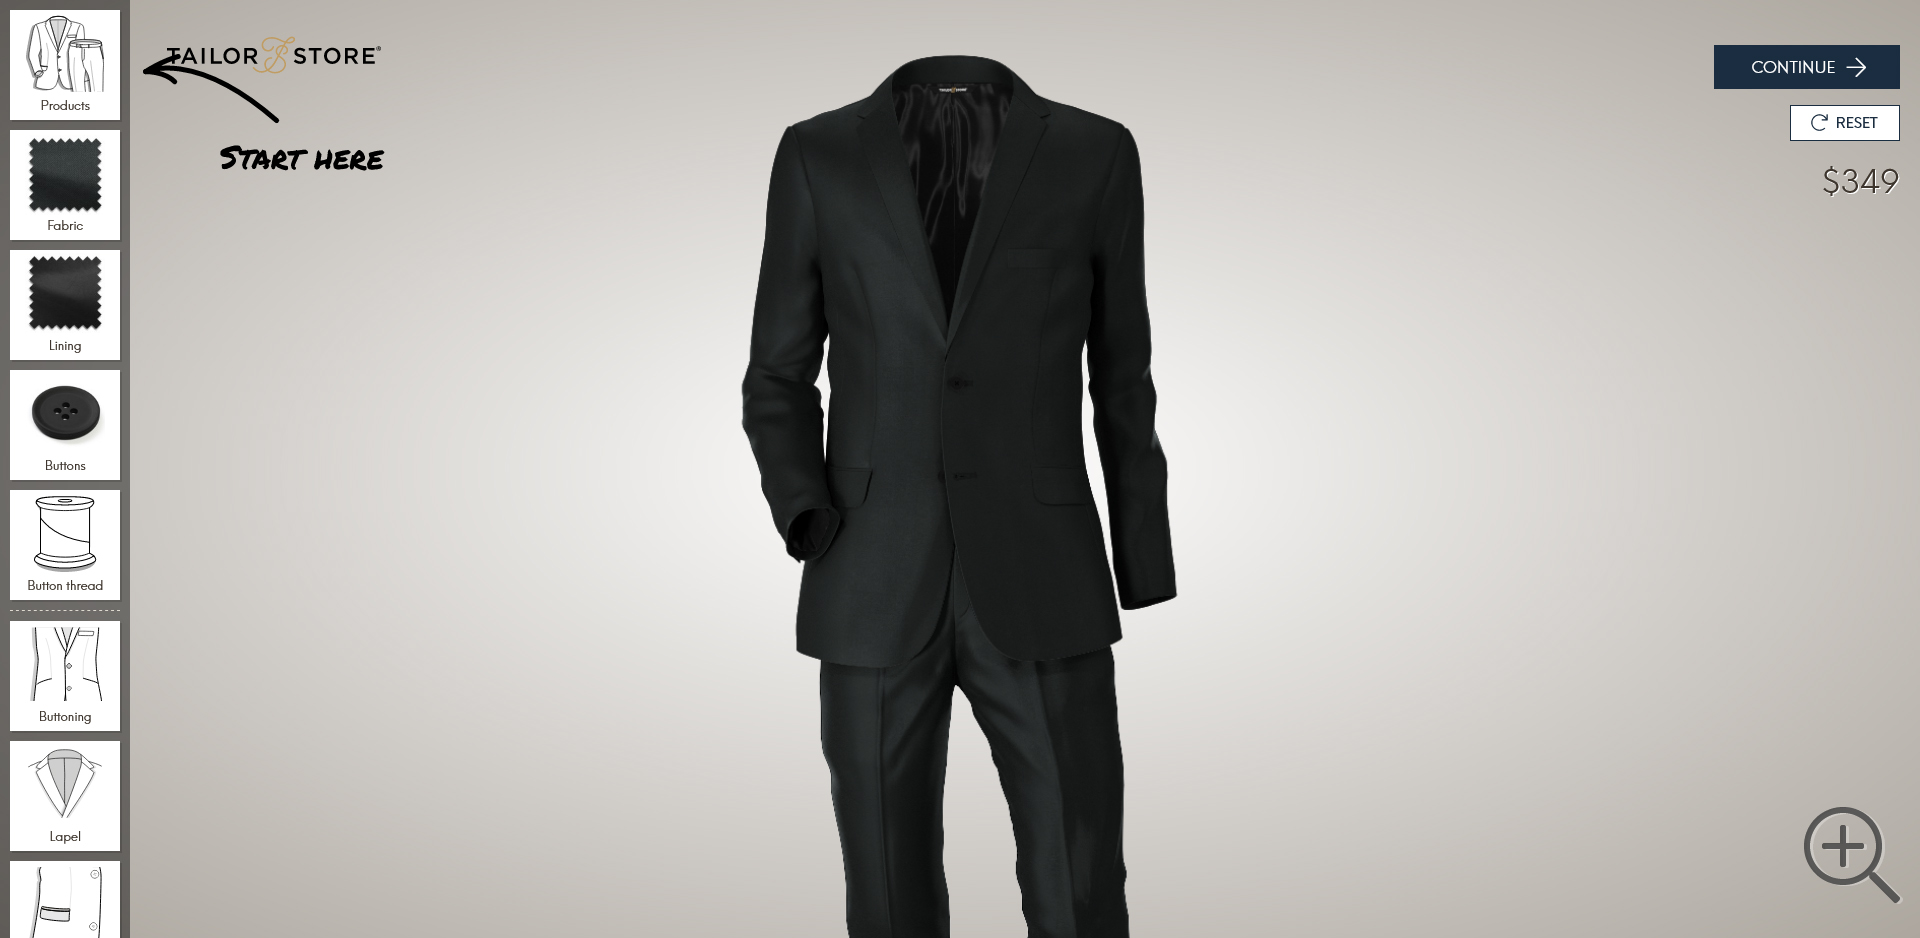 Tailor Store made-to-measure suit online customization